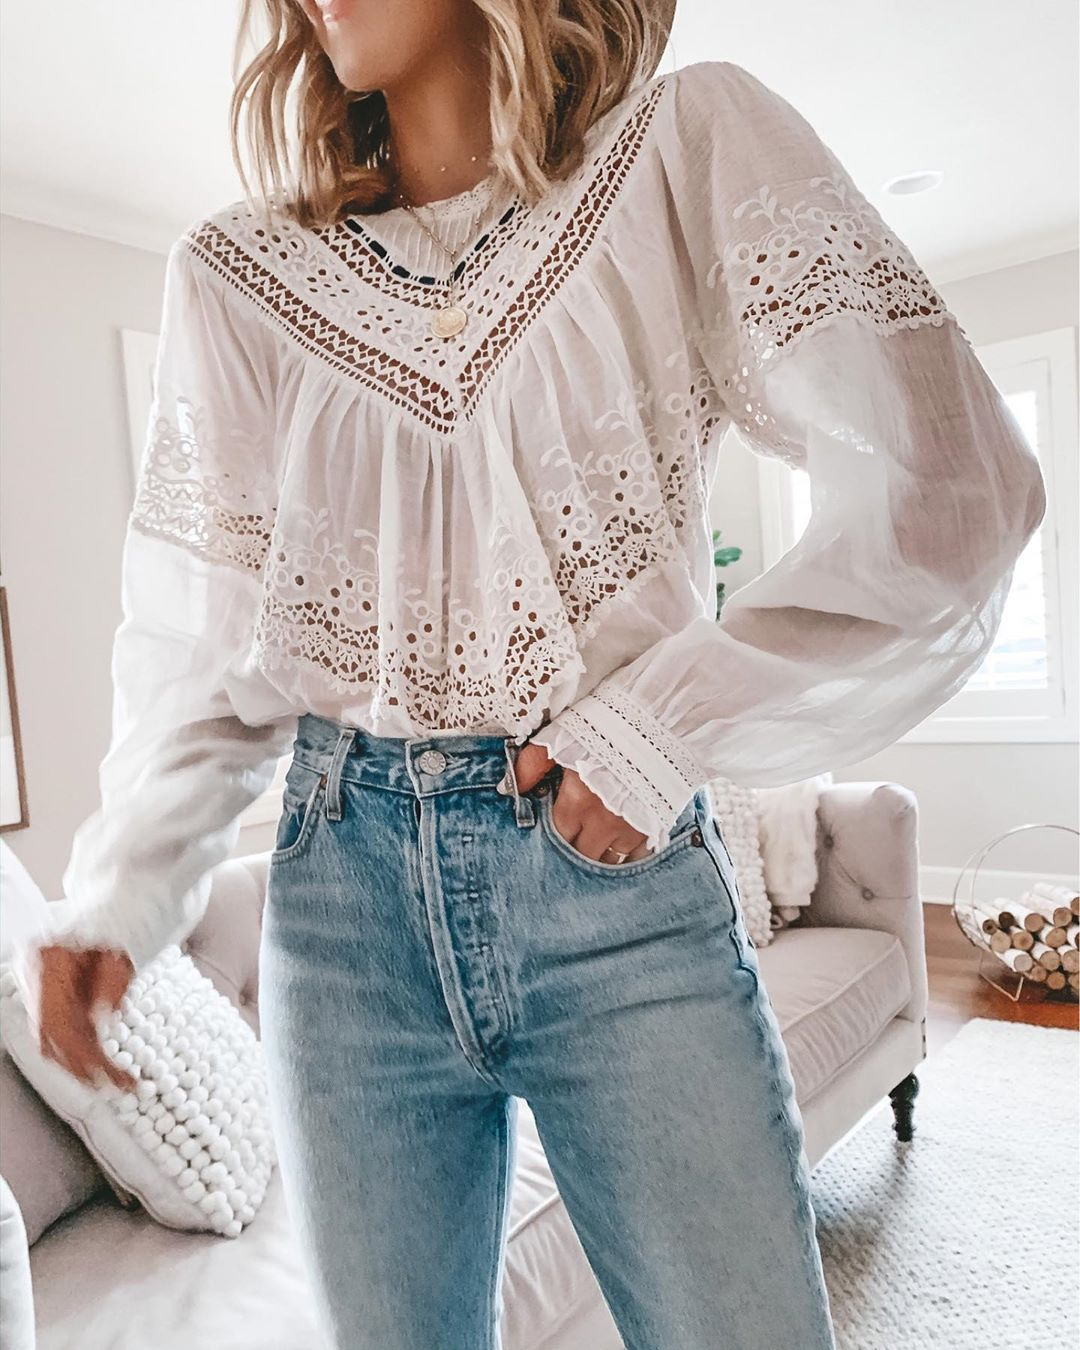 The Prettiest Feminine White Blouses for Spring